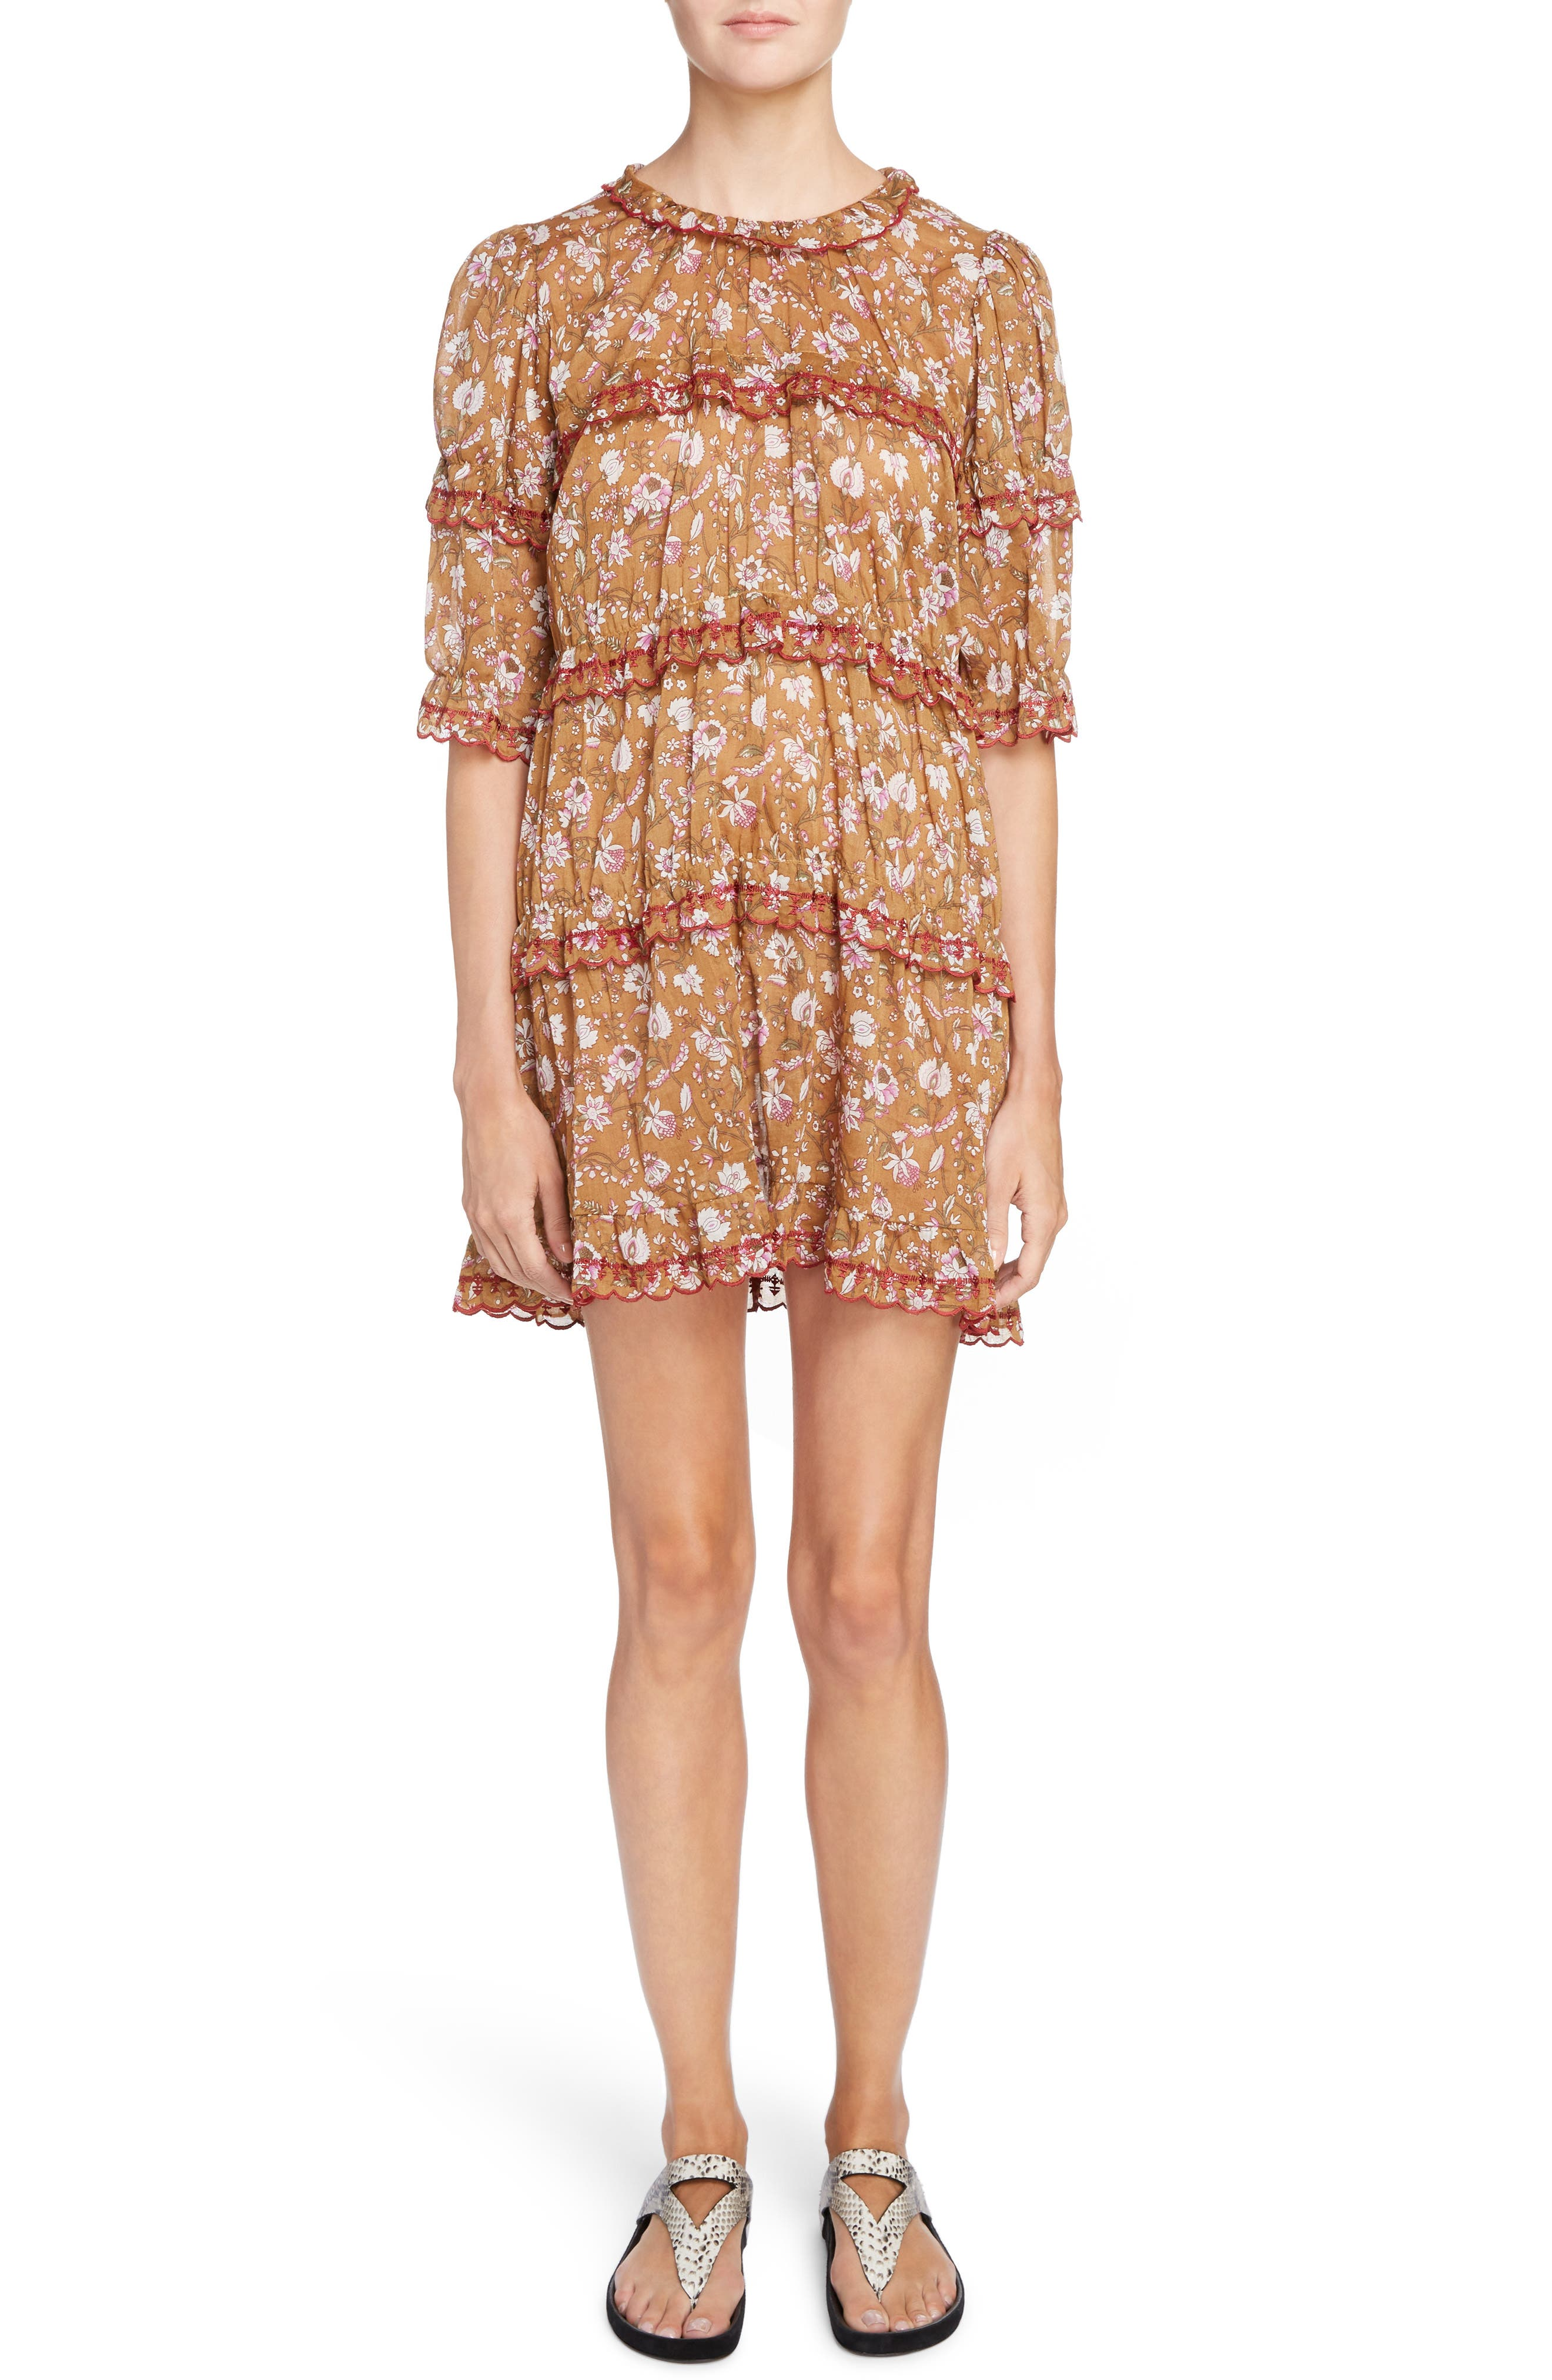 Isabel Marant Étoile Maiwenn Floral Print Cotton Dress